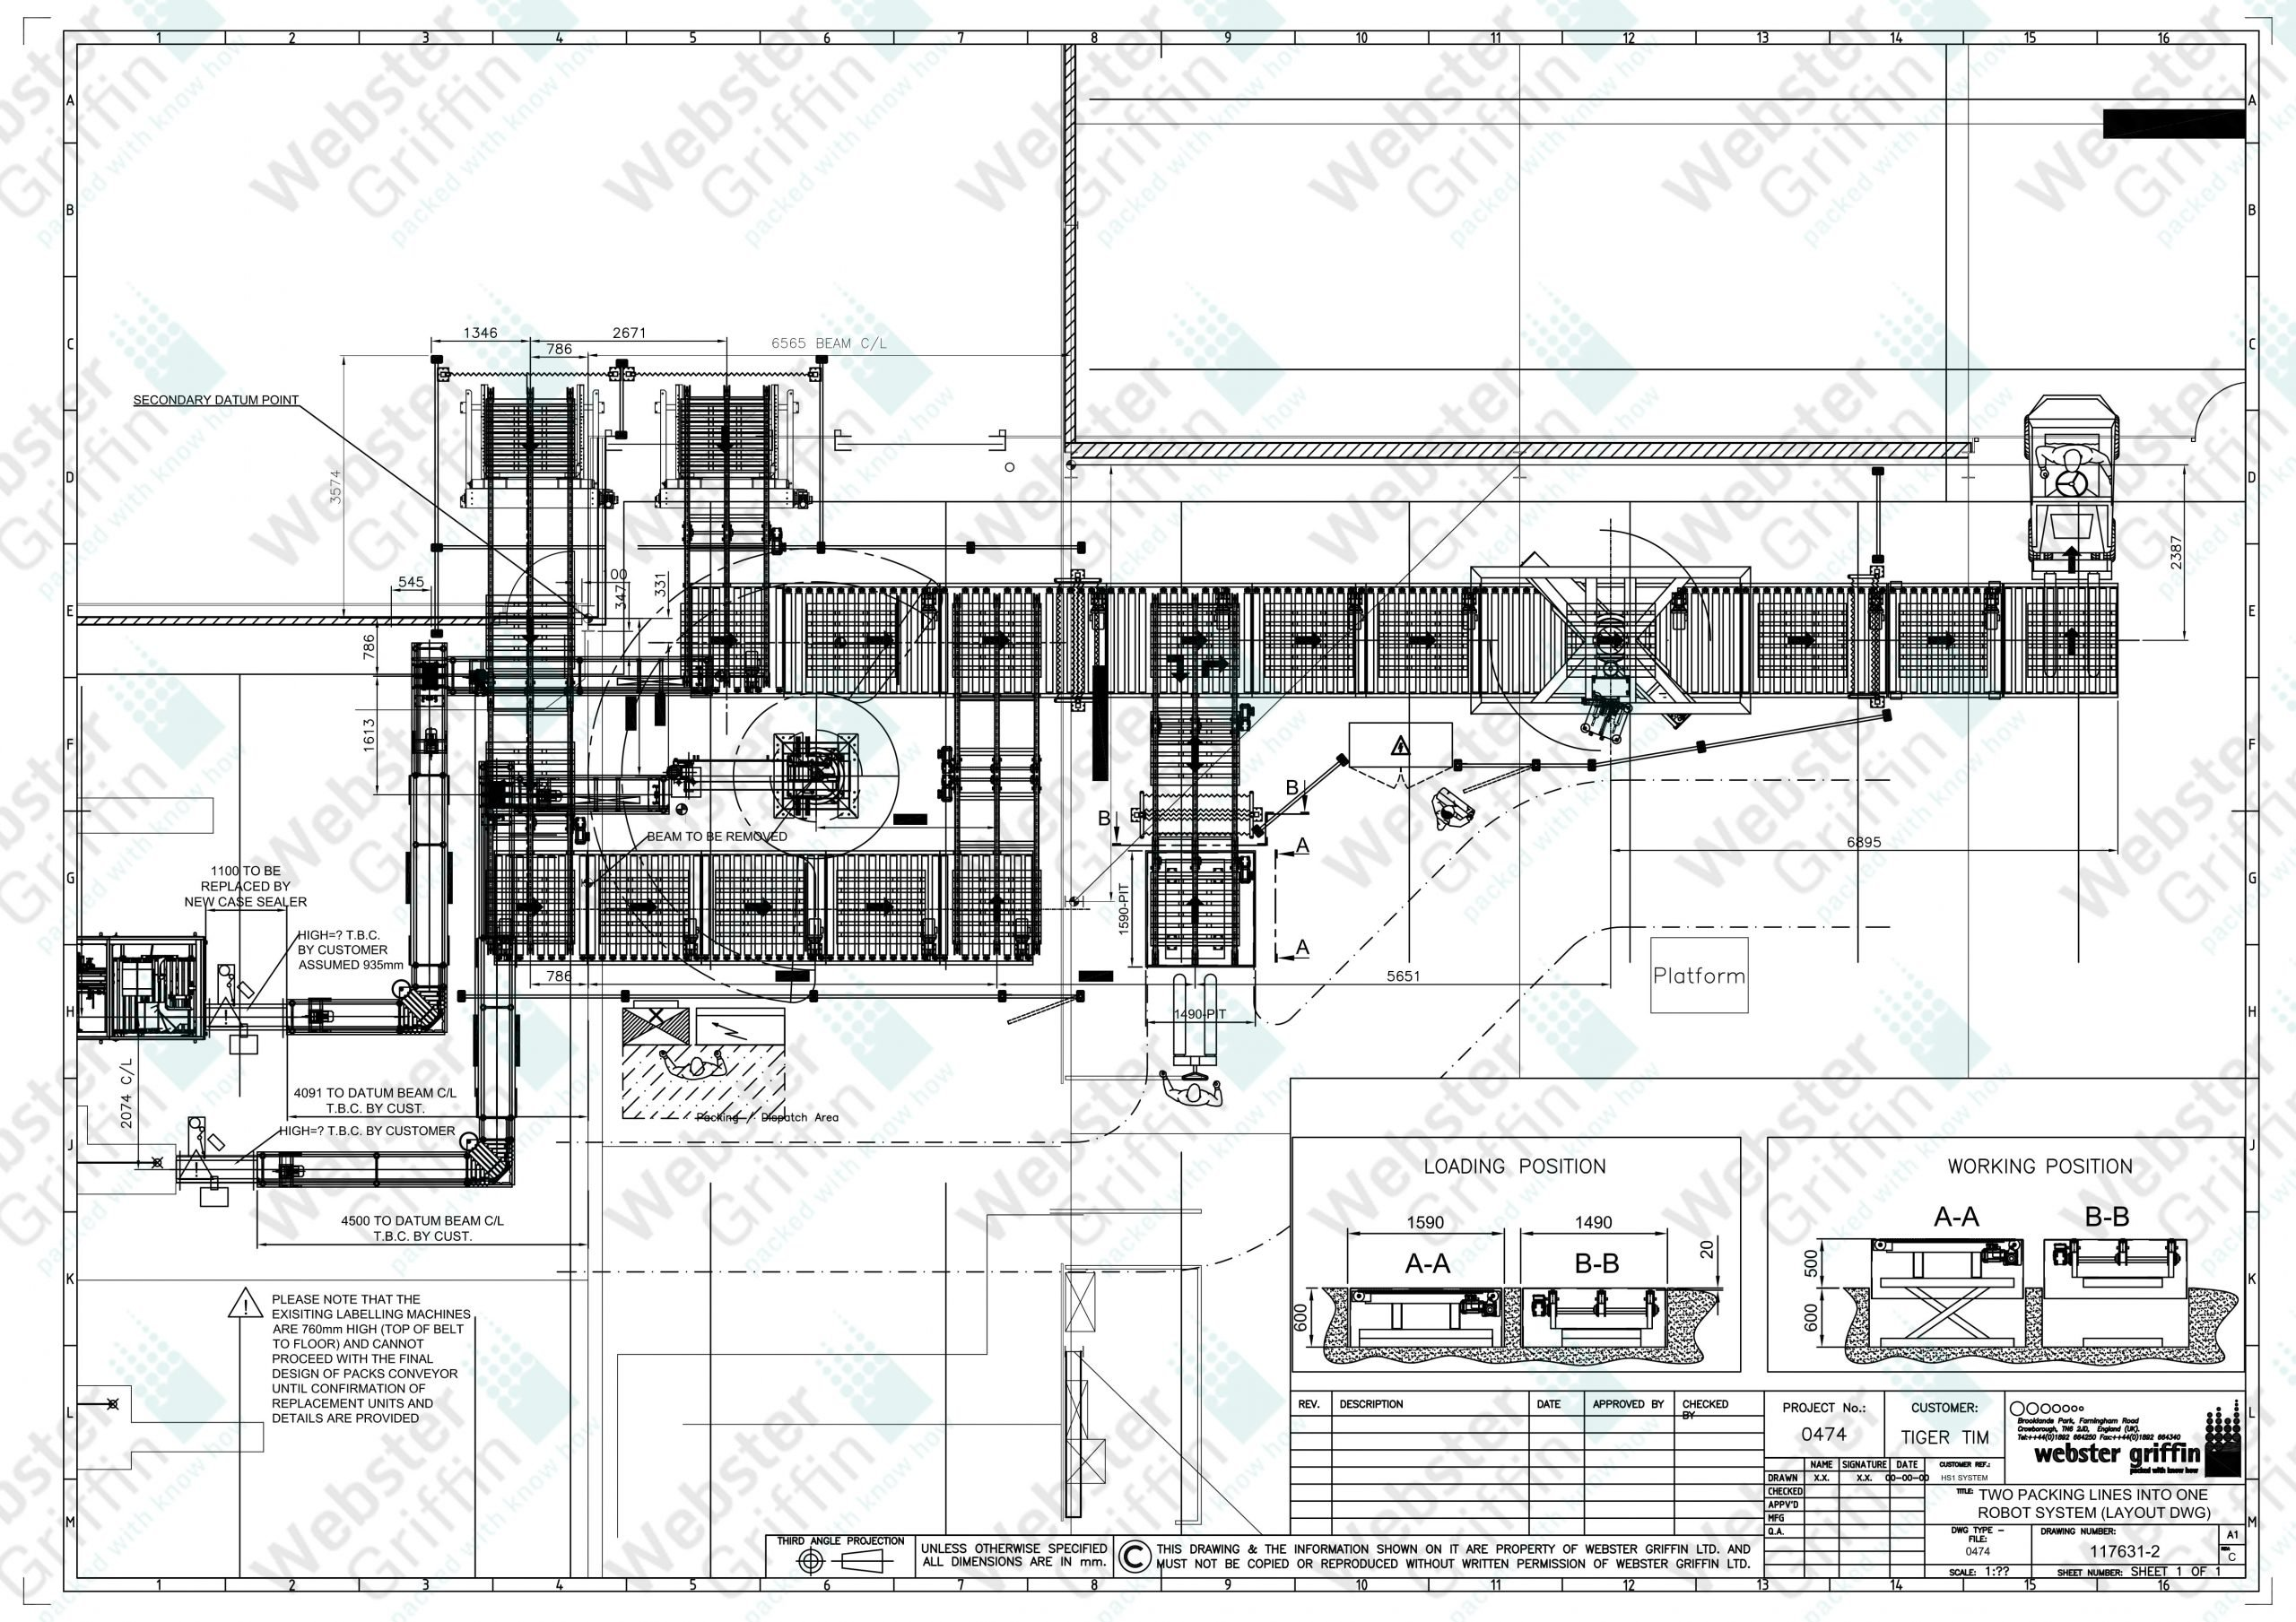 R:P- 0401 to 0500P-0474117631- Overall layout palletizing sys